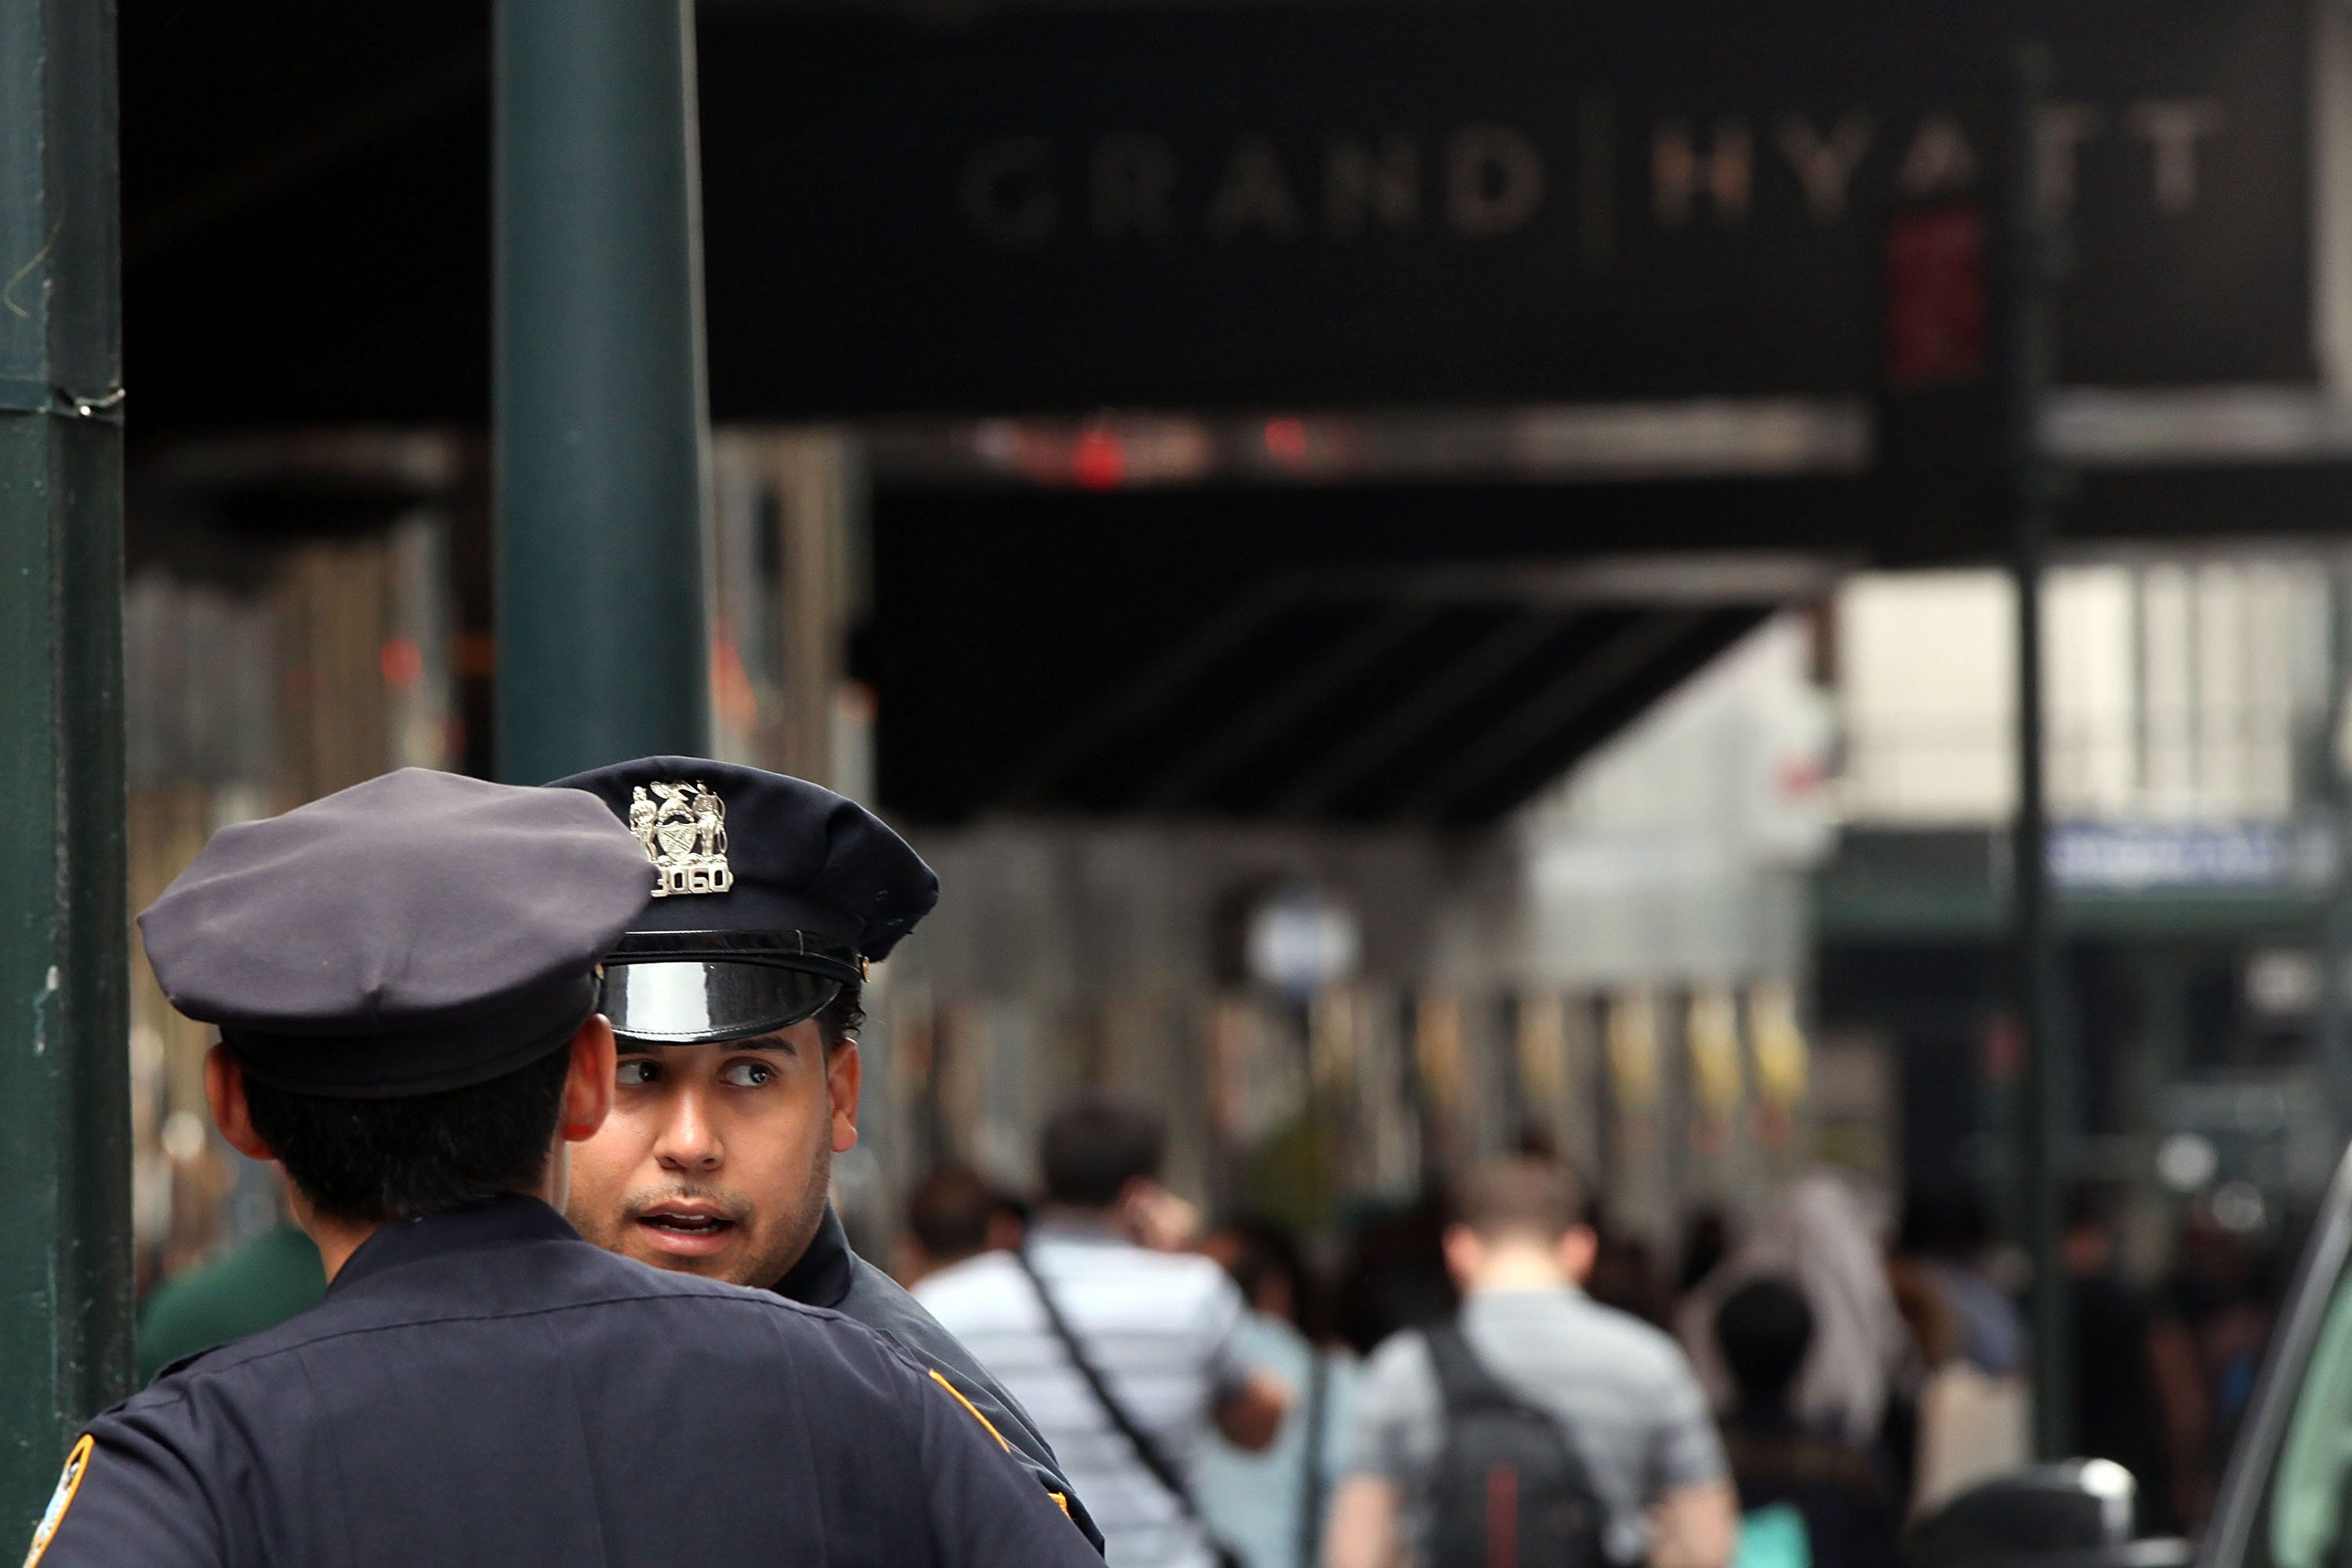 NEW YORK, NY - SEPTEMBER 10:  Police are viewed outside of the Grand Hyatt hotel in Manhattan following the mistaken arrest of James Blake, a retired top-10 professional tennis player on September 10, 2015 in New York City. Blake, who is black, has said he was slammed to the ground outside his hotel in Midtown Manhattan while waiting to go to the U.S. Open tennis tournament on Wednesday. New York Police Department Commissioner William J. Bratton  has apoligized for the incident and an investigation is continuing.  (Photo by Spencer Platt/Getty Images)